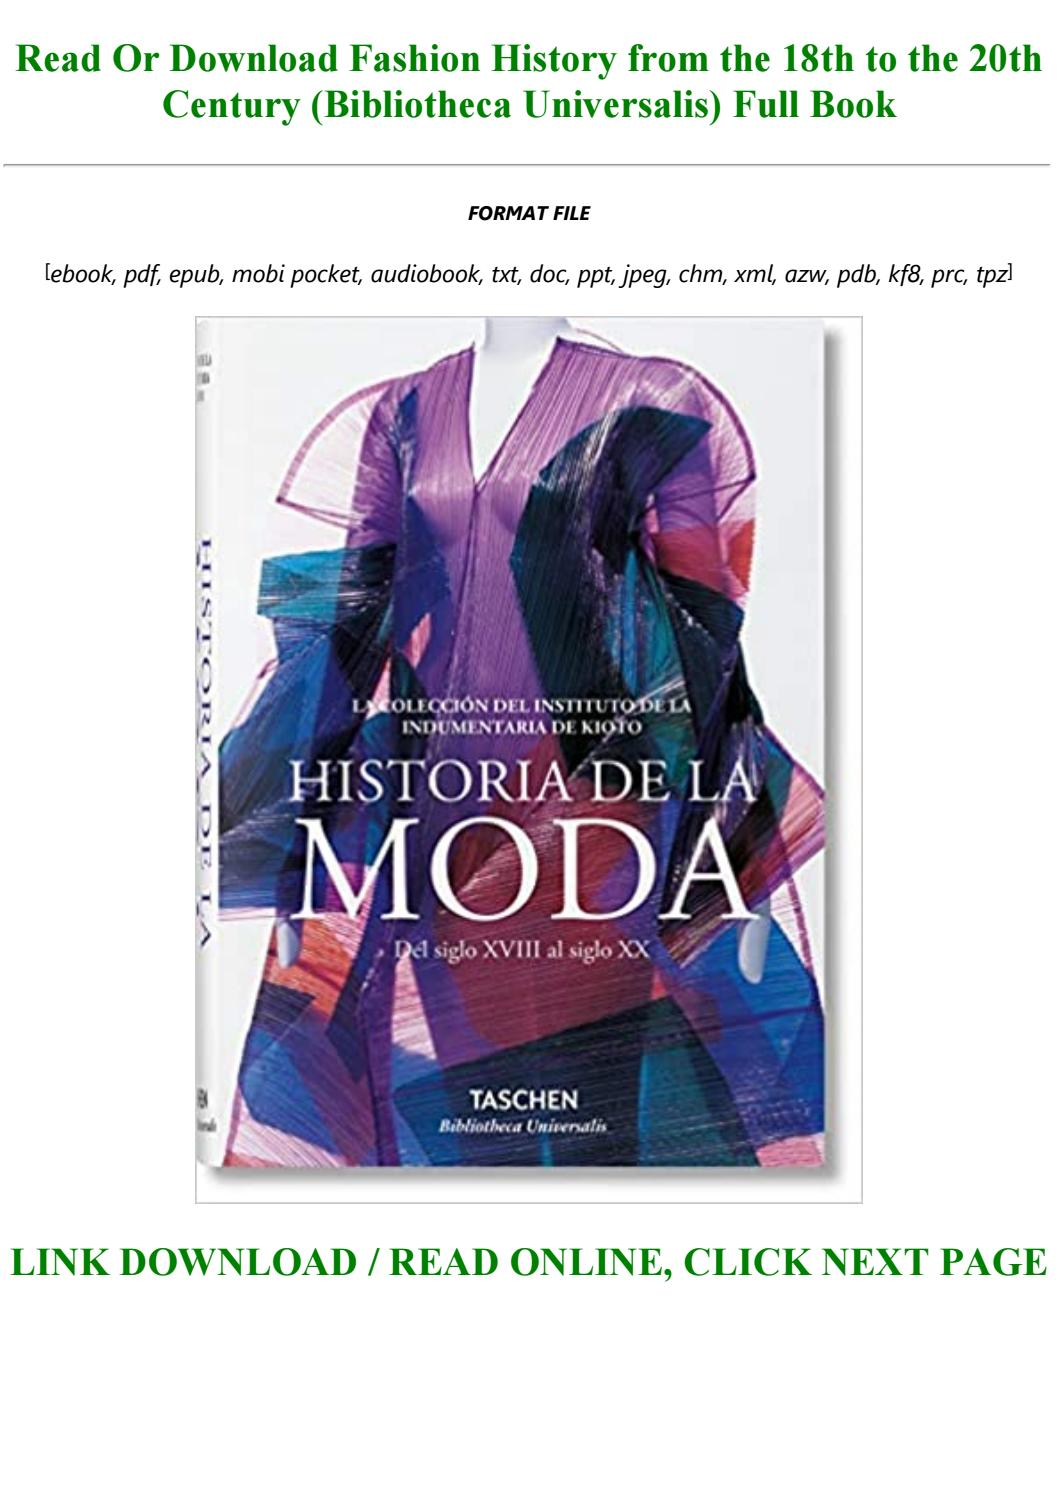 Pdf Fashion History From The 18th To The 20th Century Bibliotheca Universalis For Any Device By Rex123316 Issuu